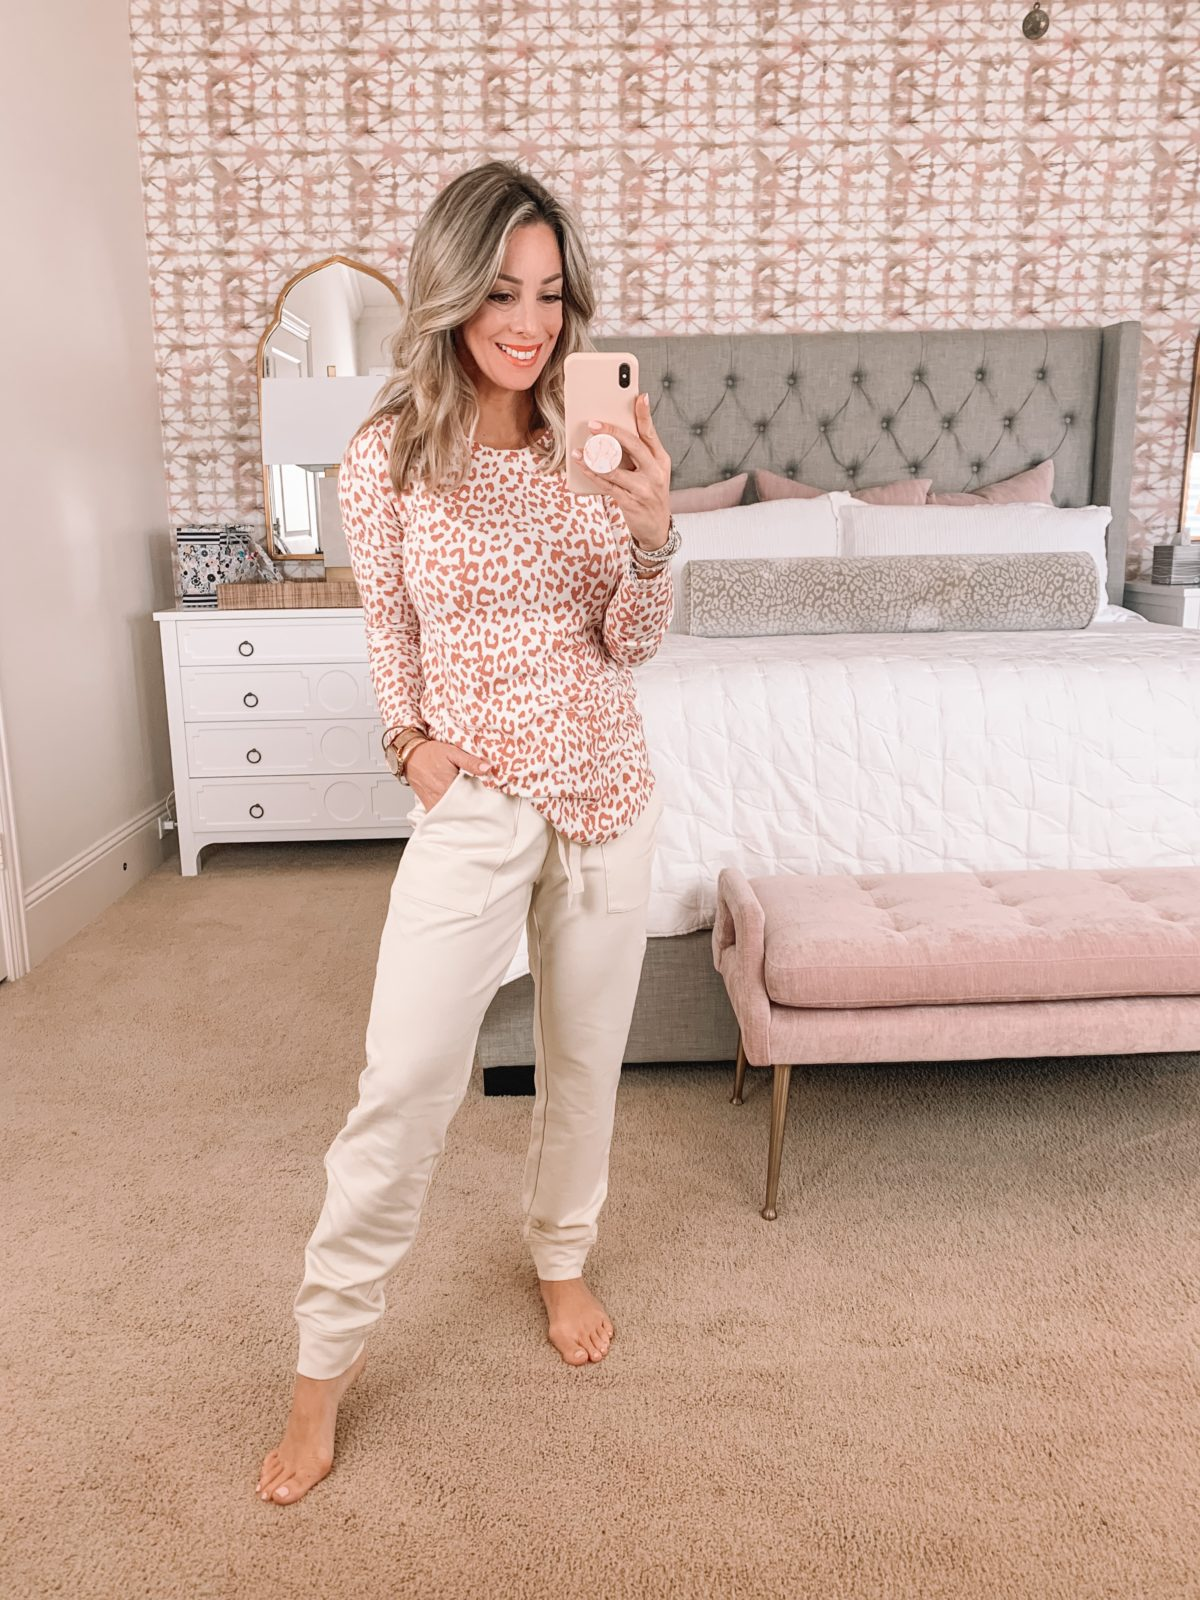 Amazon Fashion Faves, Leopard Print Top, Joggers